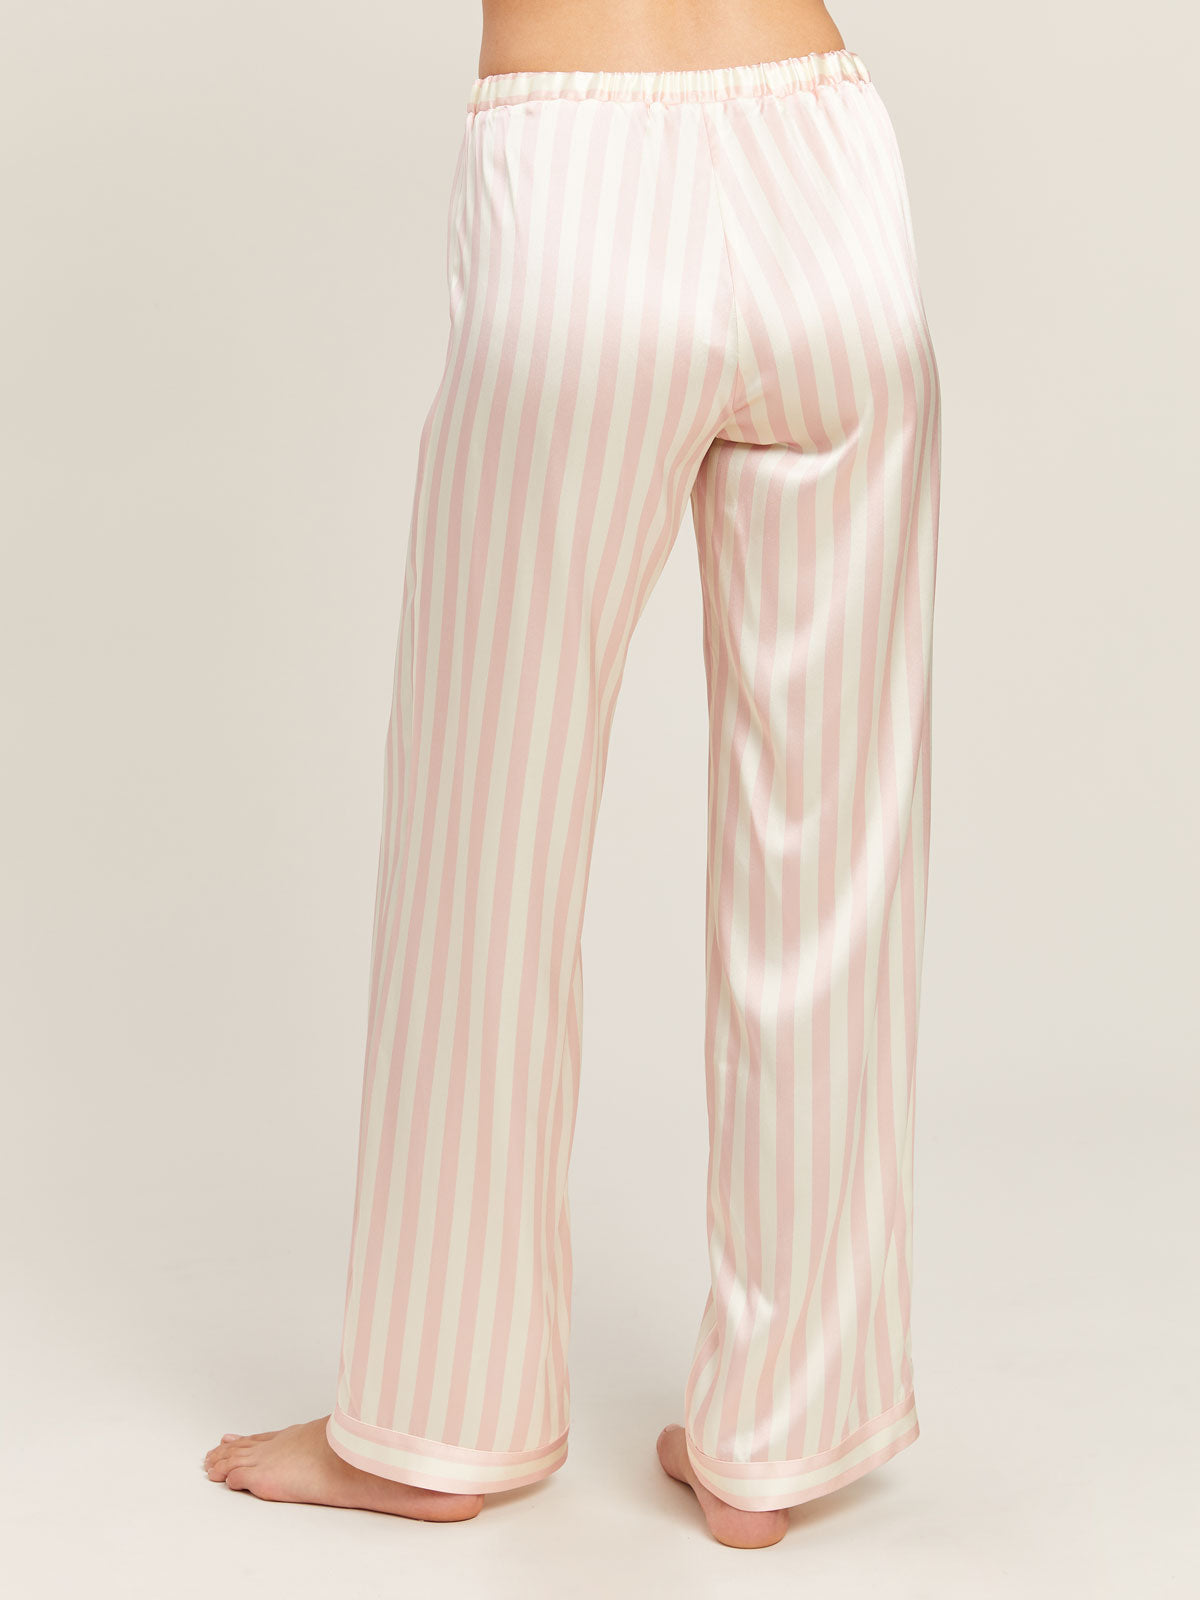 Chantal Pant in Petal Stripe By Morgan Lane